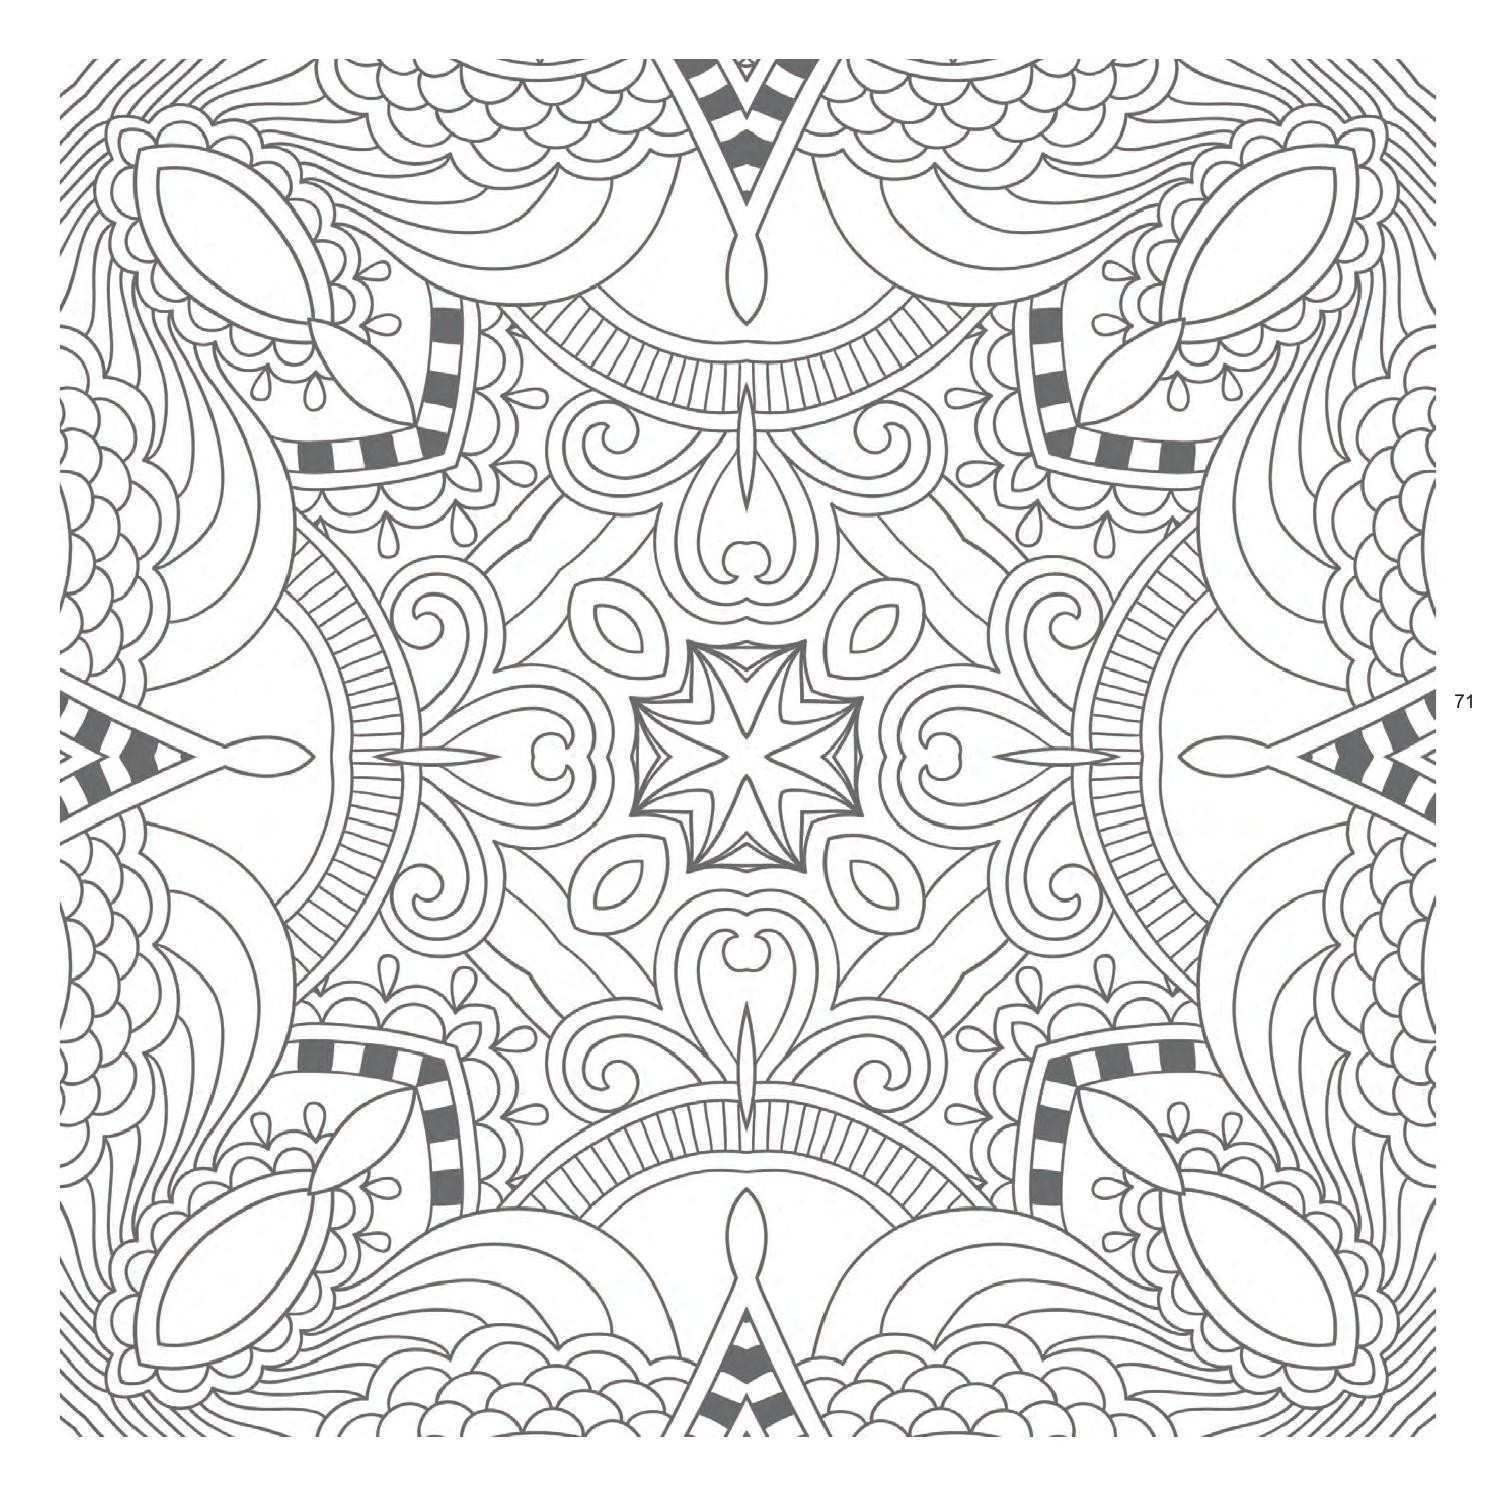 Free Coloring Pages for Boys Awesome Fresh S S Media Cache Ak0